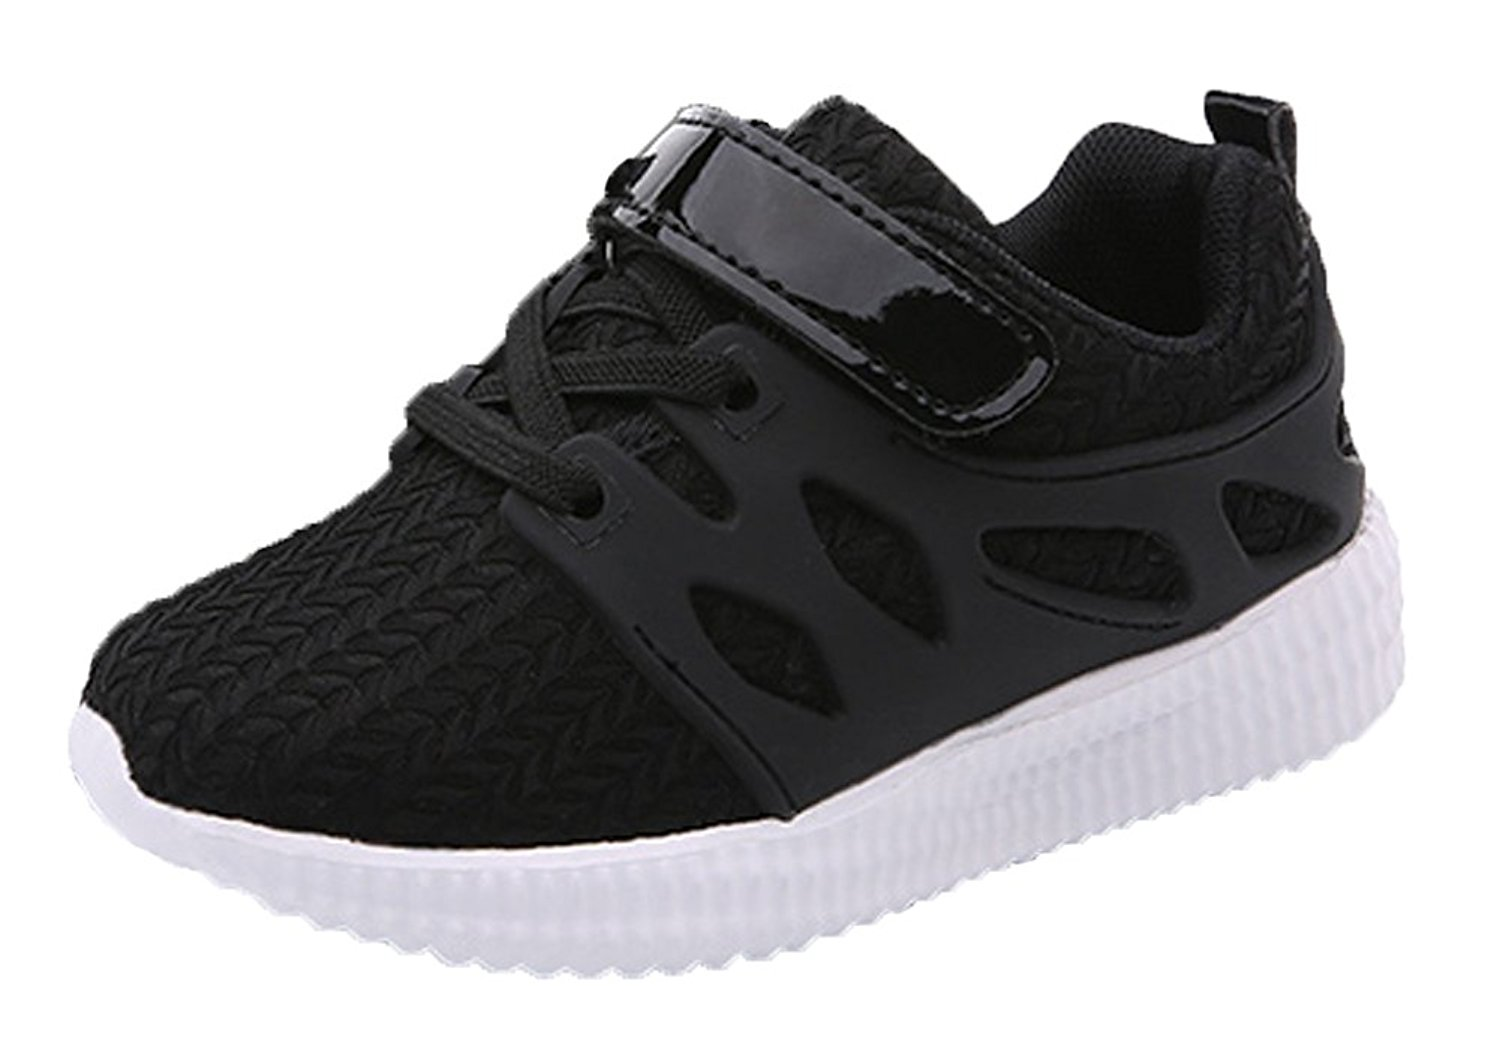 bad3b64a038 Get Quotations · iDuoDuo Kids Breathable Mesh School Gym Shoes Lightweight  Sport Running Shoes (Toddler Little Kid